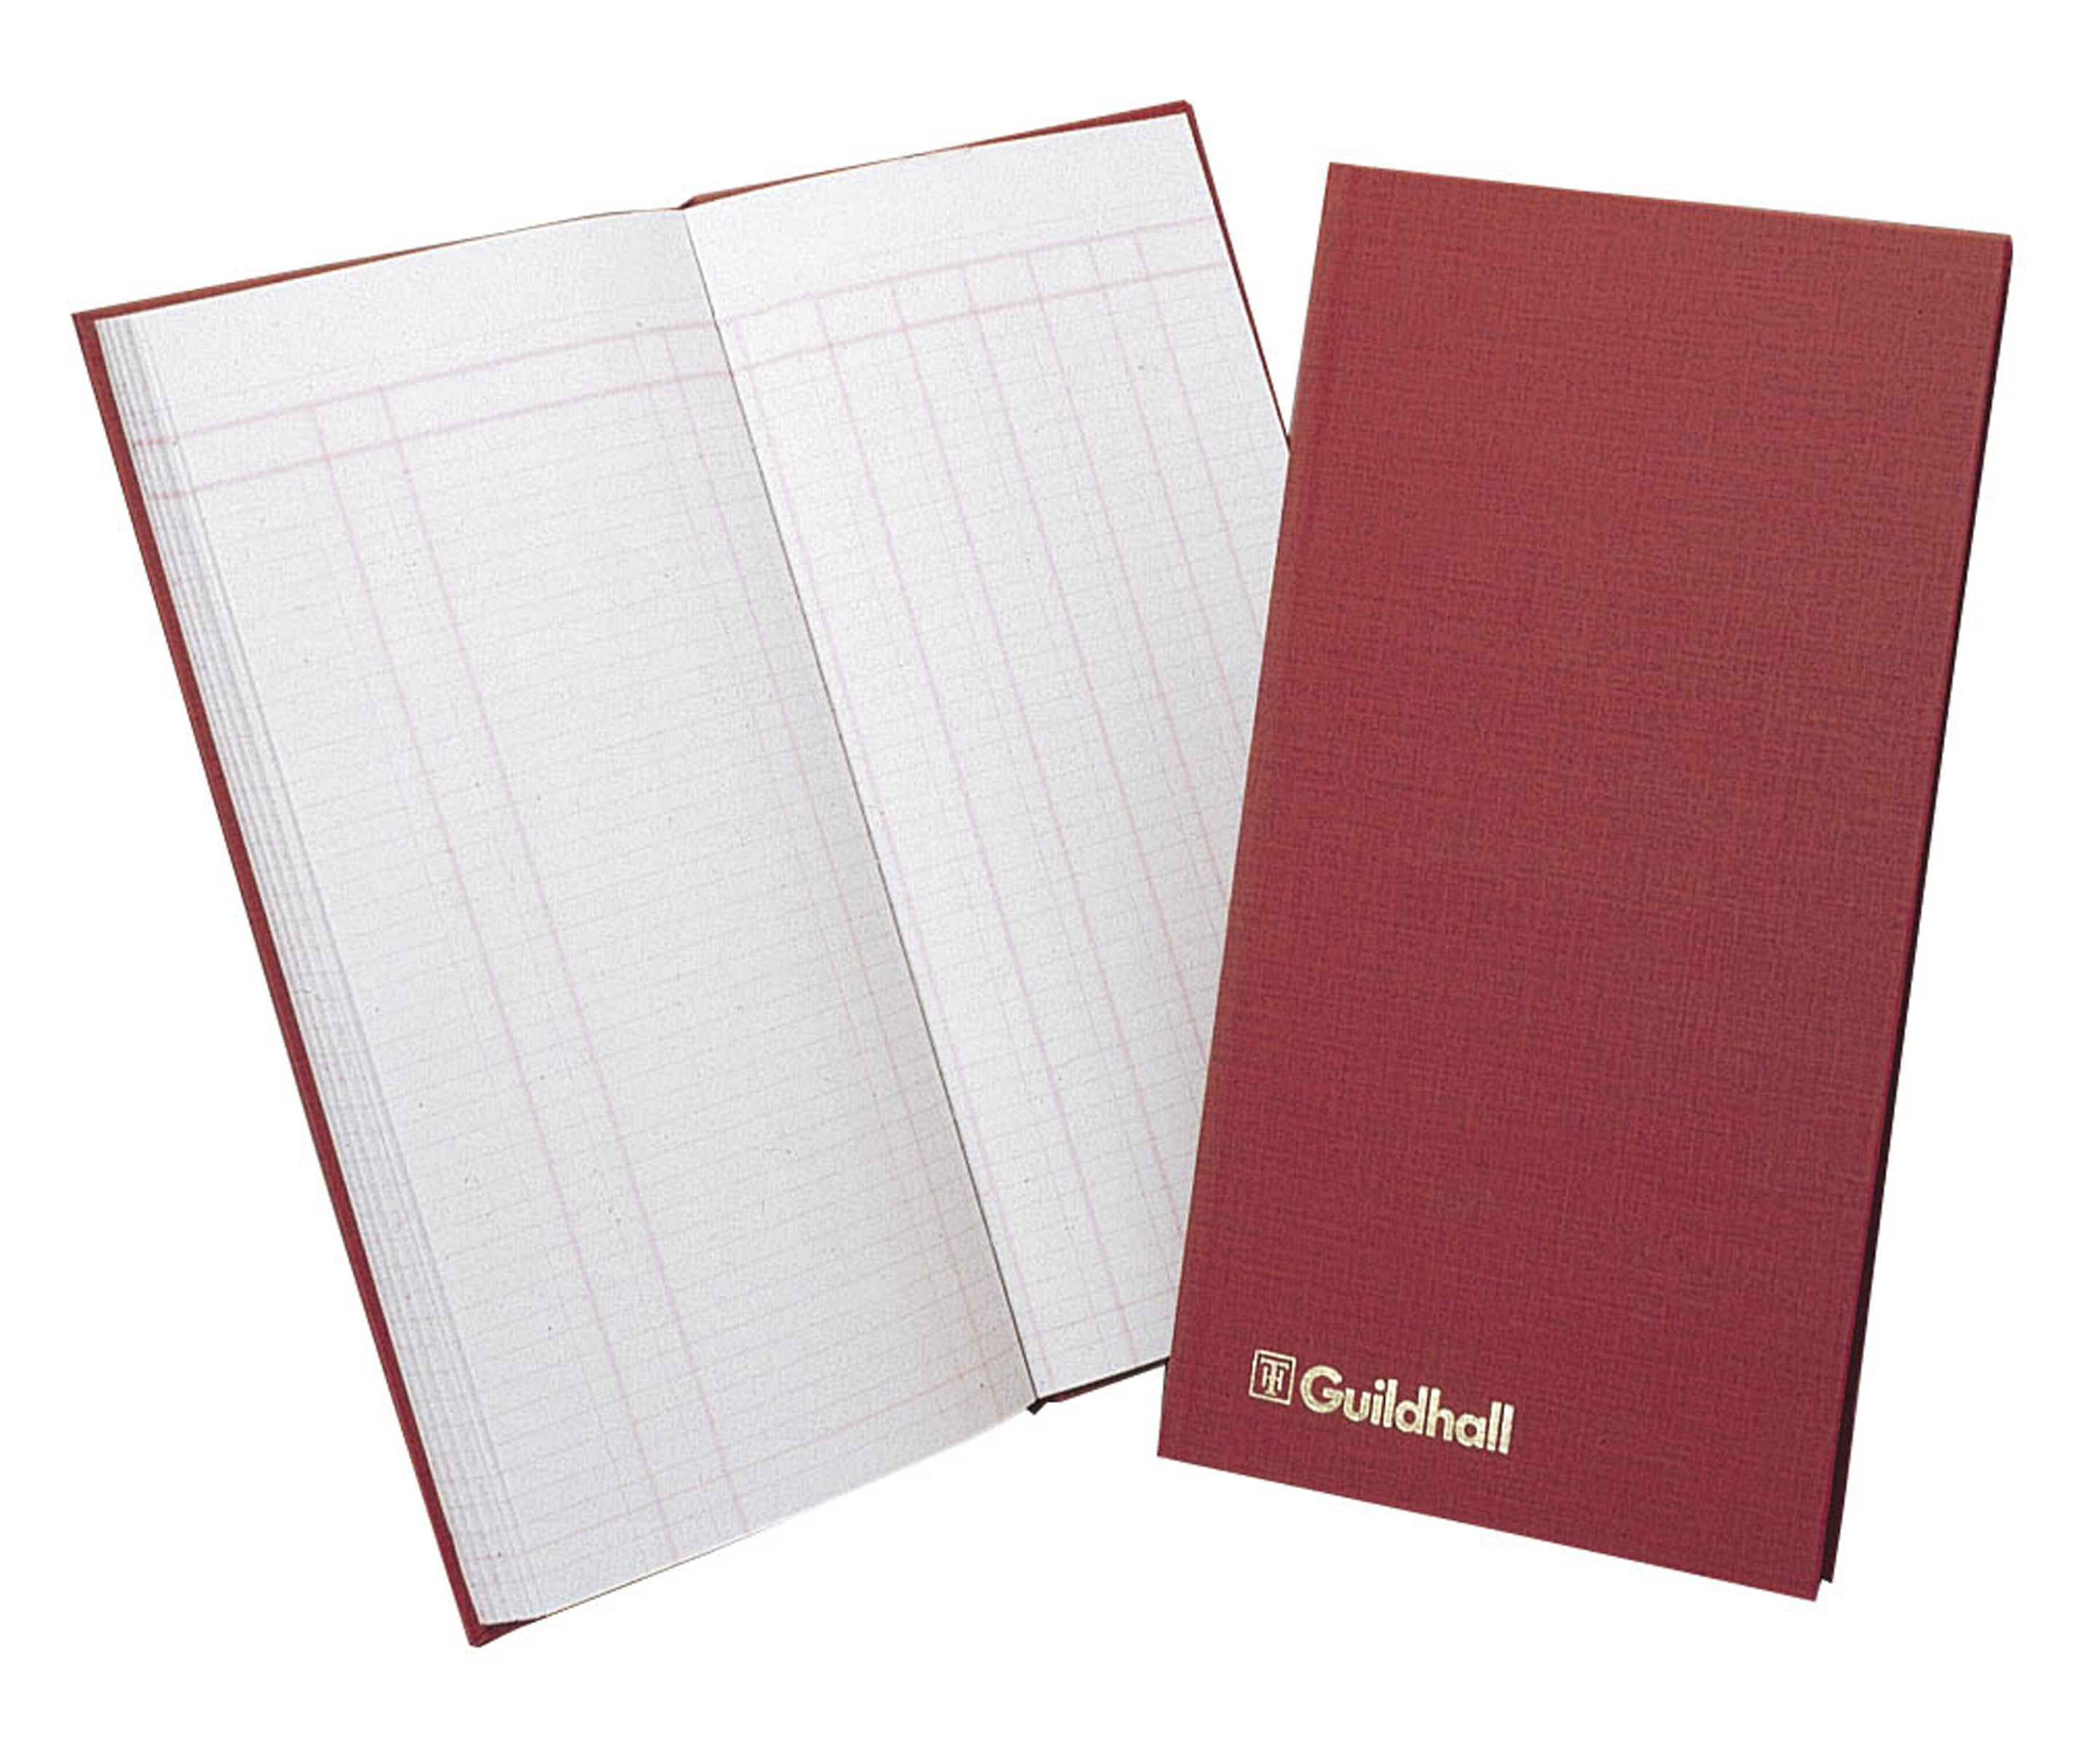 Guildhall Petty Cash Book Ruled 1 Debit 7 Credit 80Pg T272Z